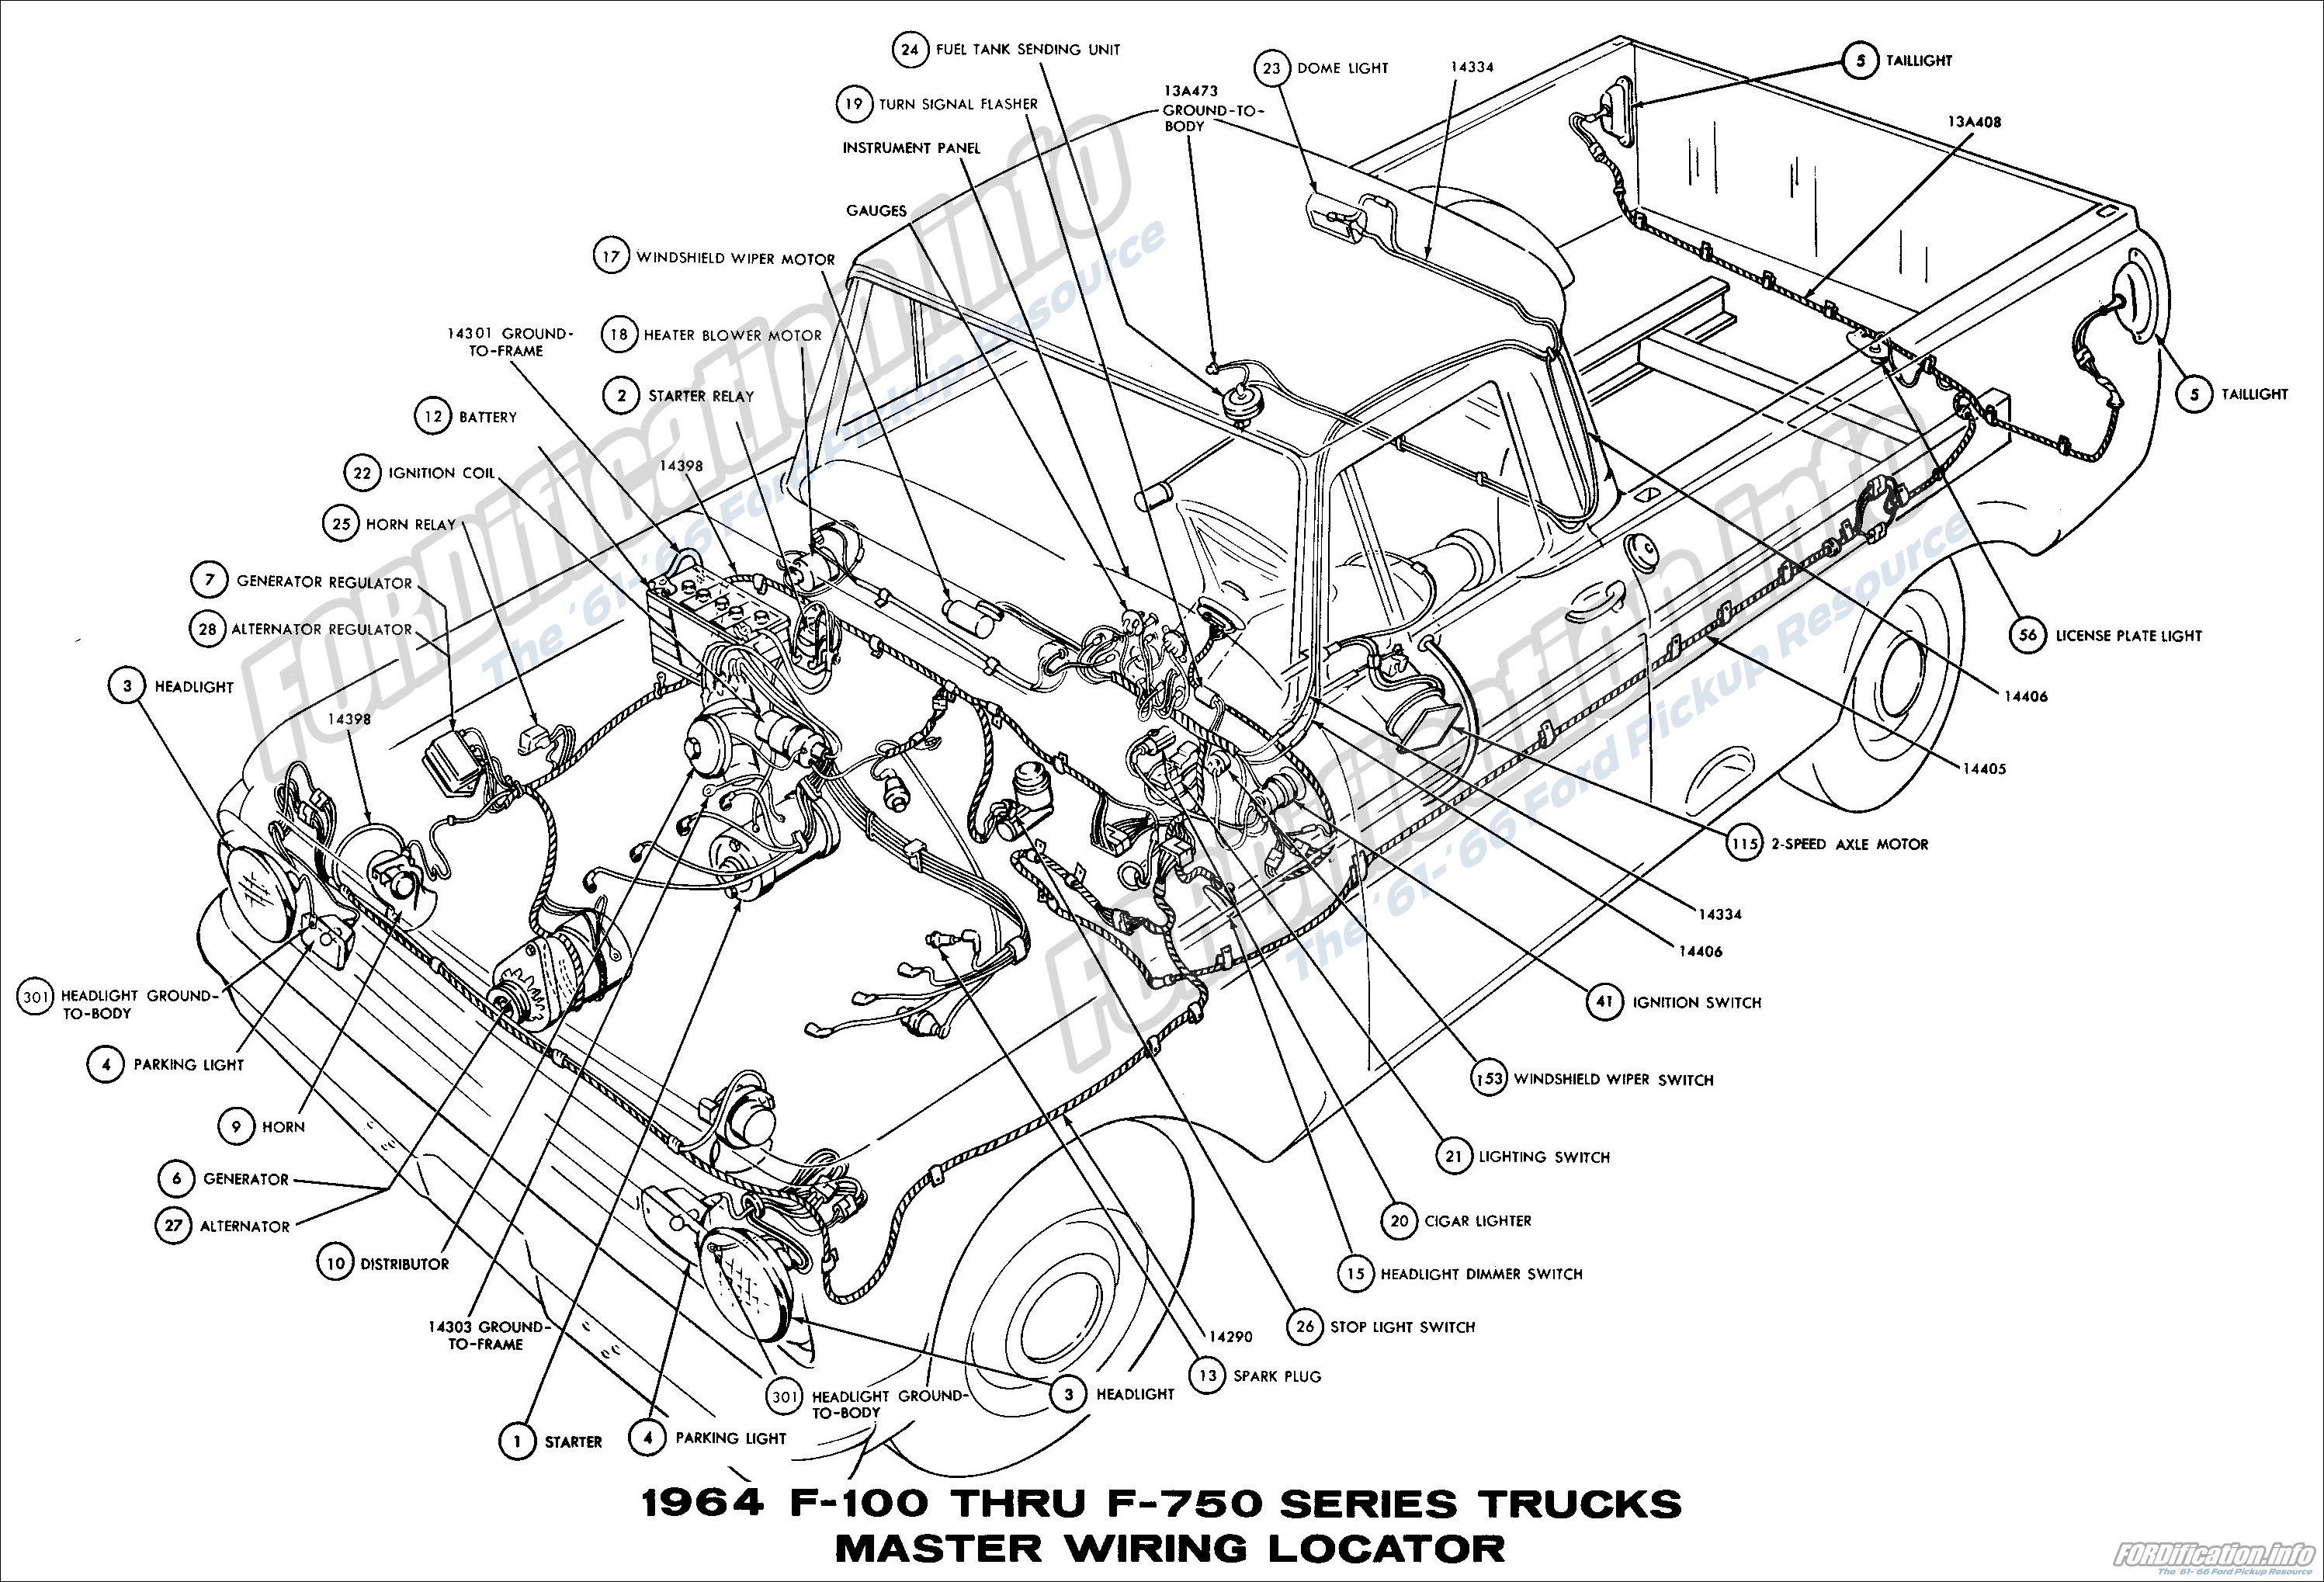 1964_01_gif 1964 ford truck wiring diagrams fordification info the '61 '66 1964 ford f100 wiring diagram at crackthecode.co